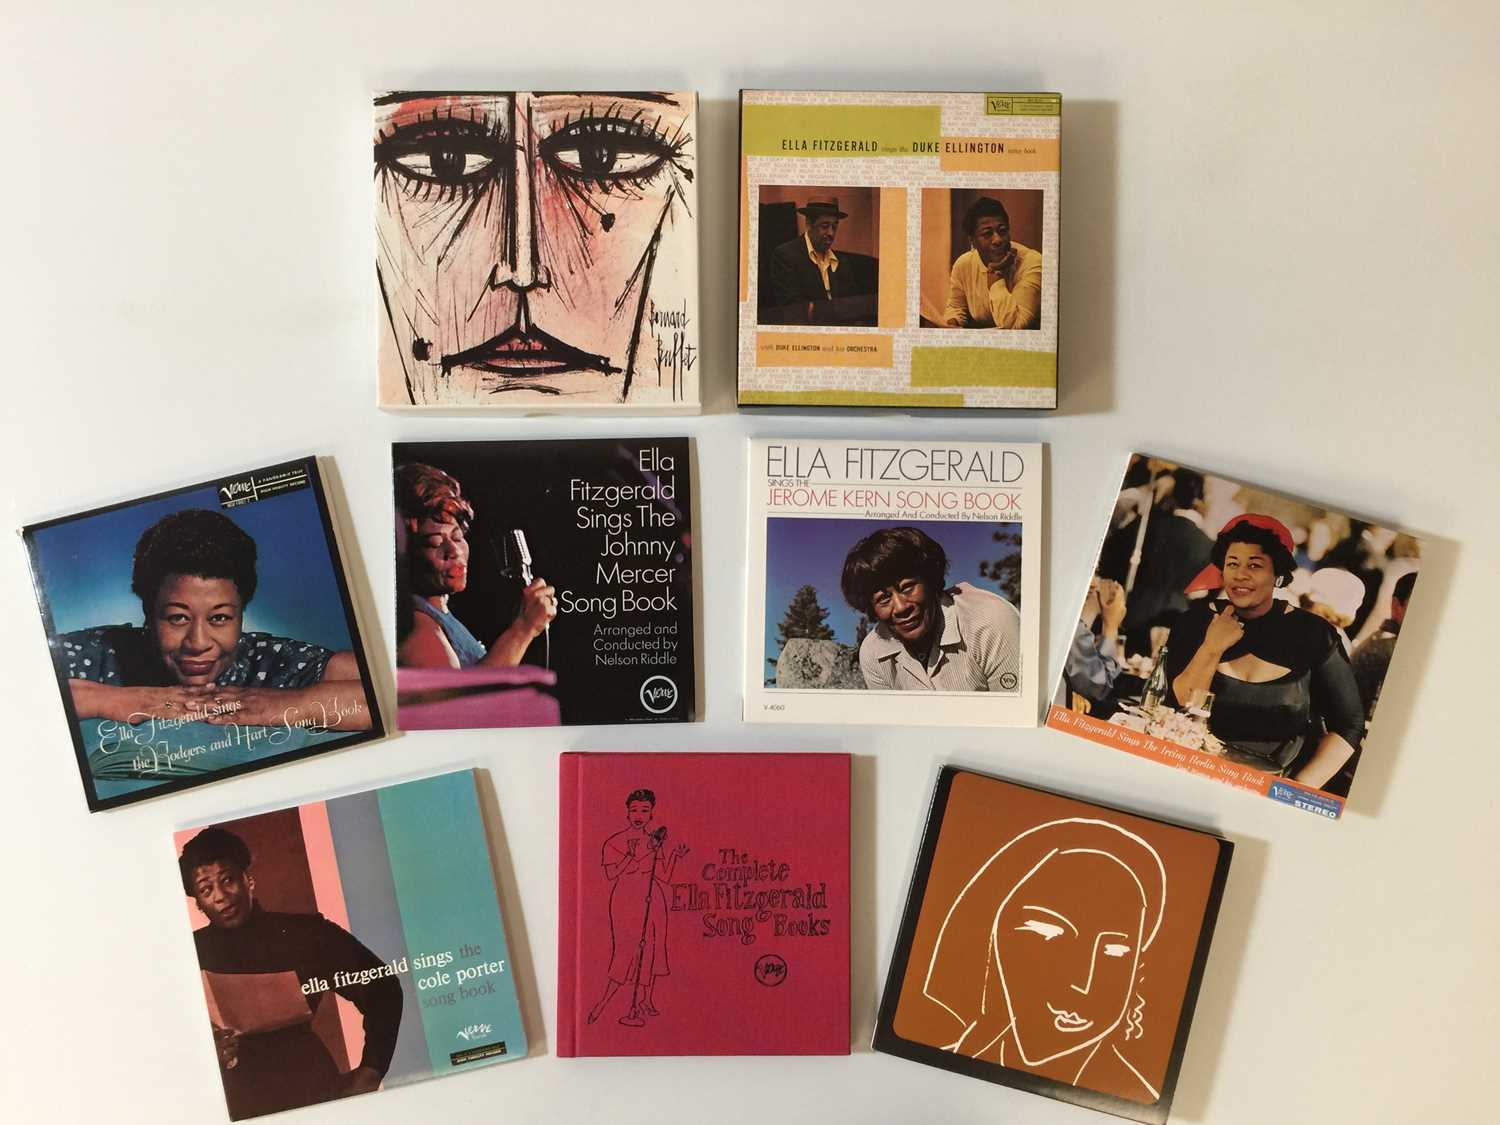 ELLA FITZGERALD - THE COMPLETE SONG BOOKS (16 CD SET - 314519 832-2) - Image 2 of 2